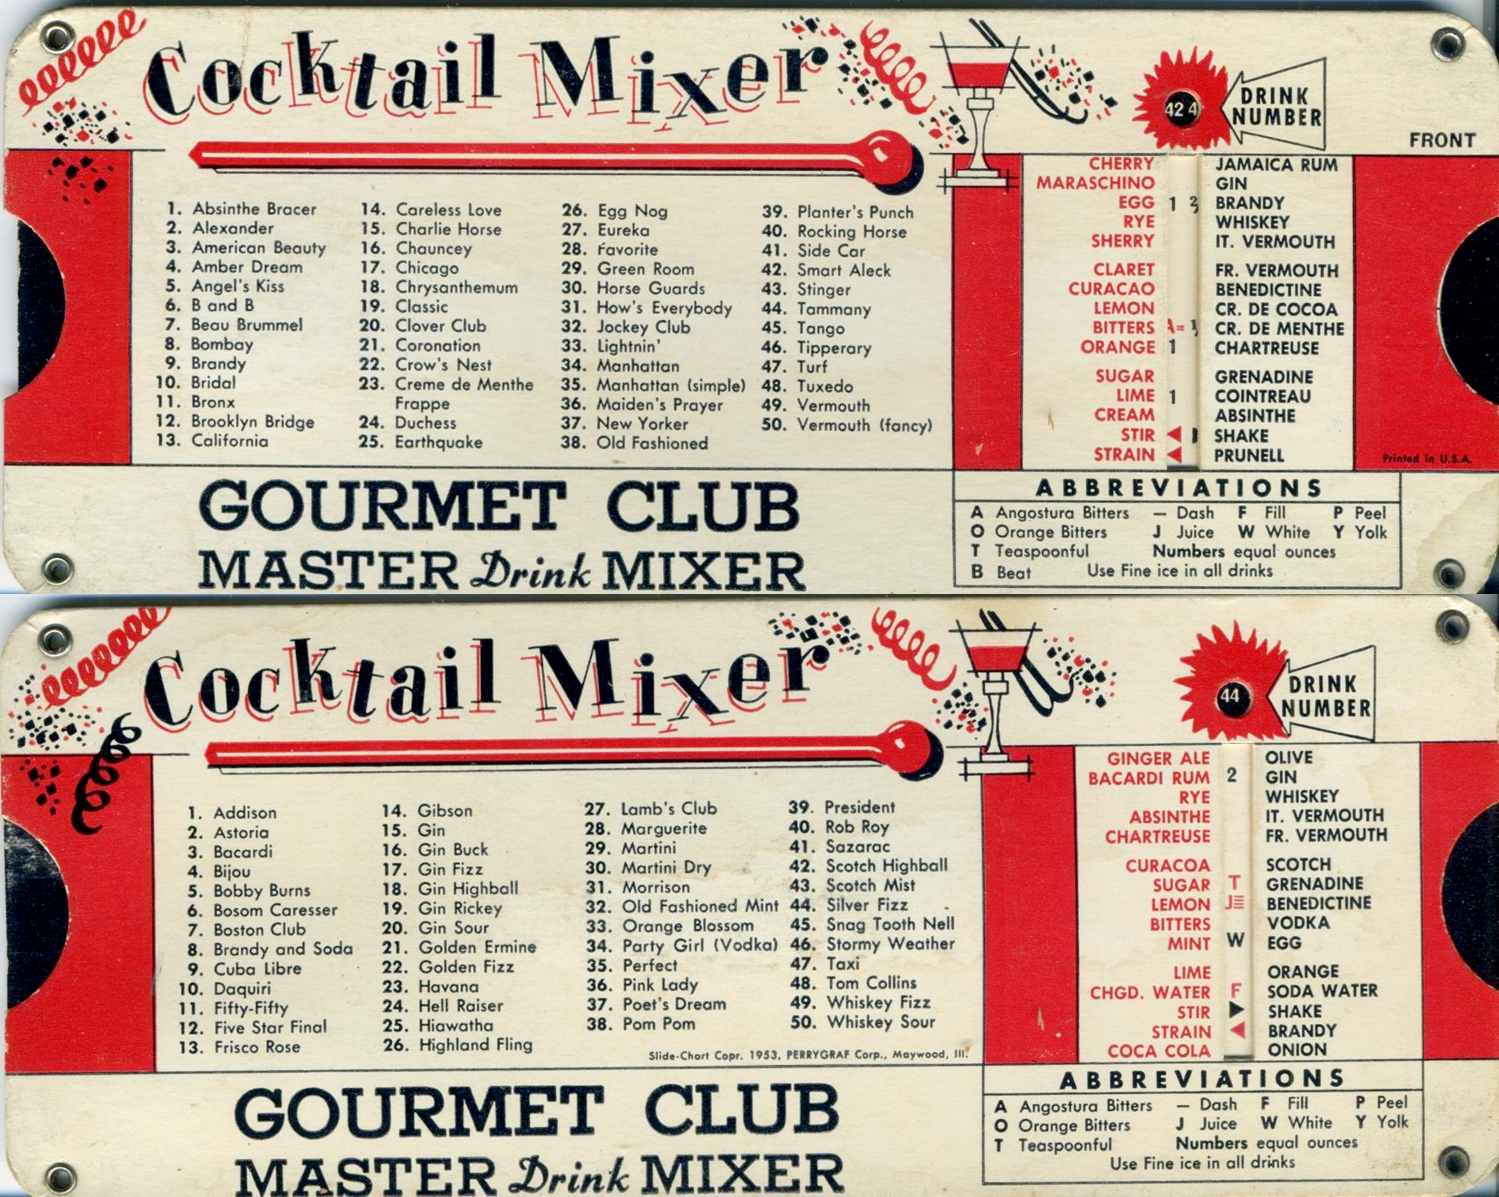 The Cocktail Mixer slide-rule, copyright 1953